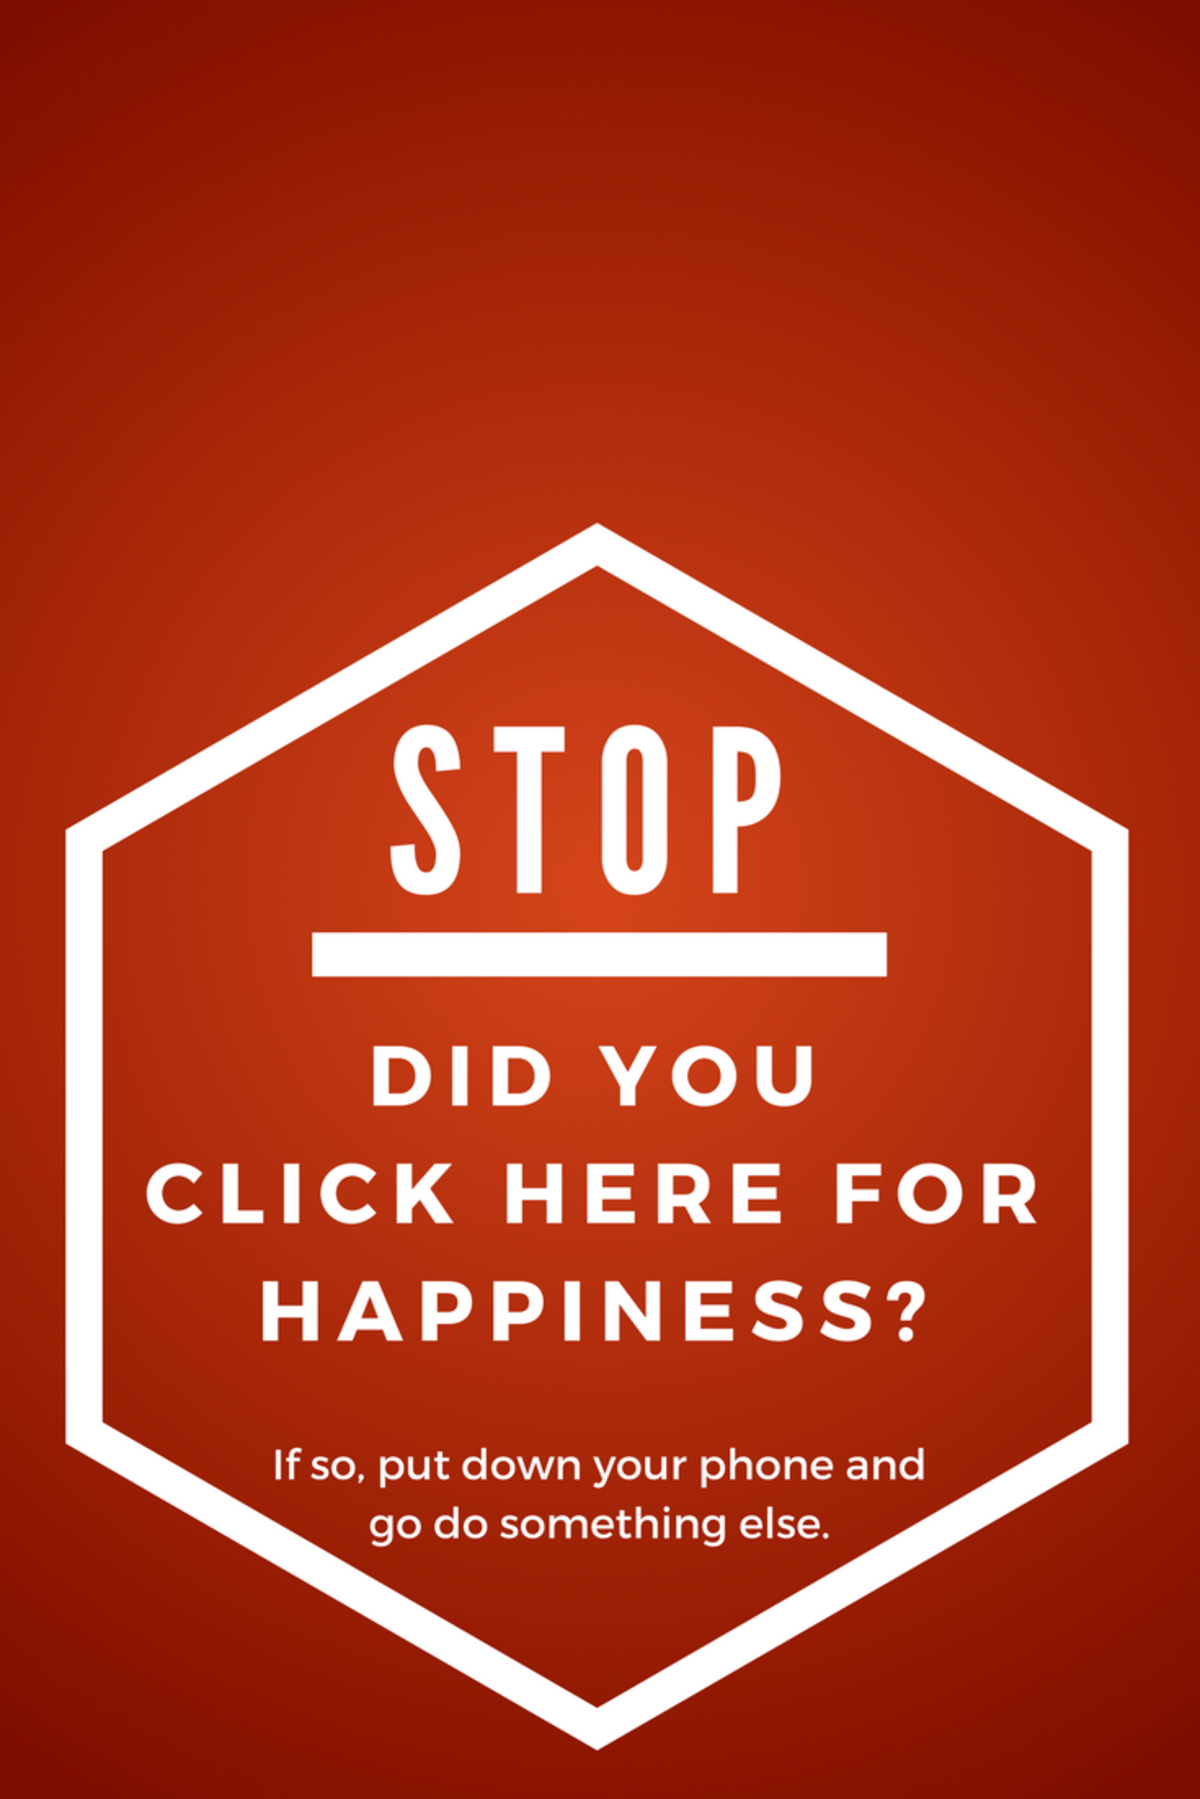 How to Break up with Your Phone | Psychology Today